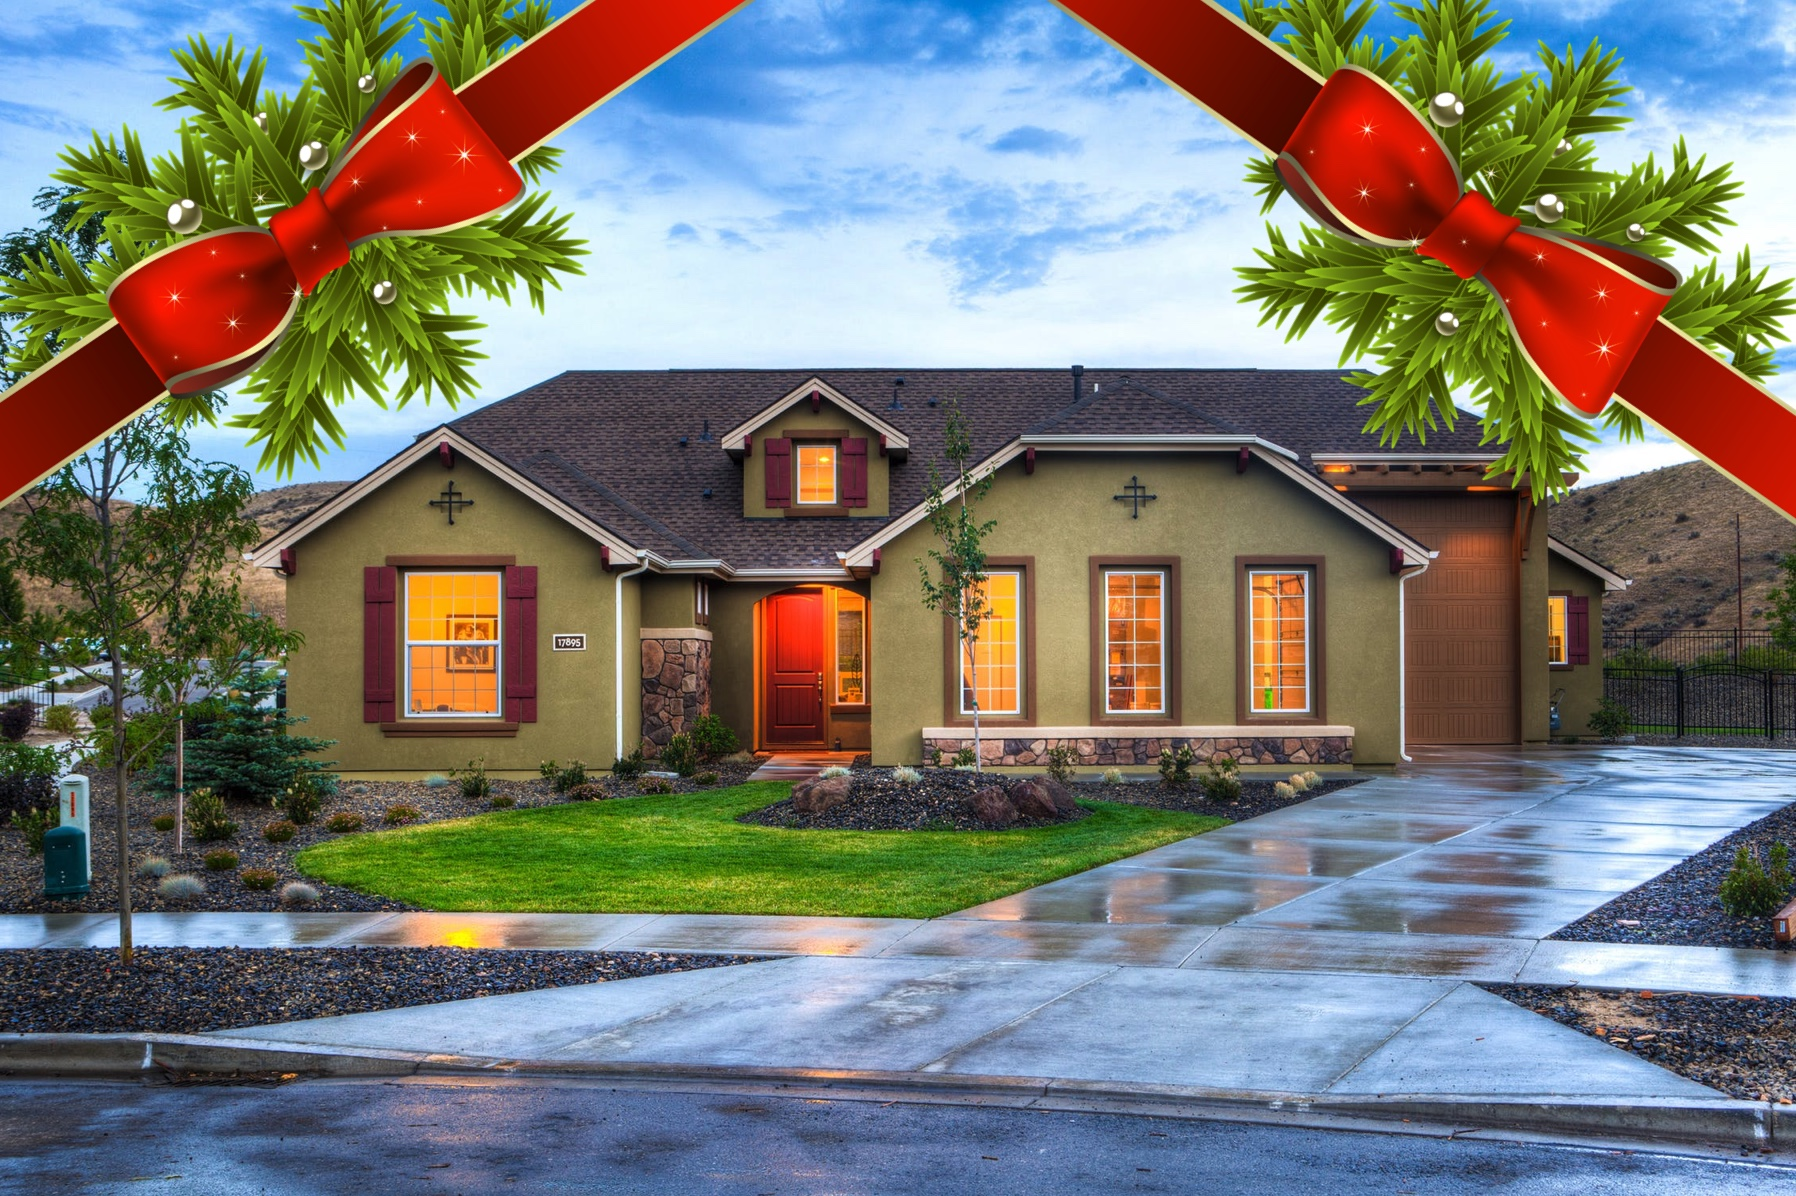 Three Reasons Home Window Films Are A Great Gift For Your House - Home Window Tinting in Western Michigan